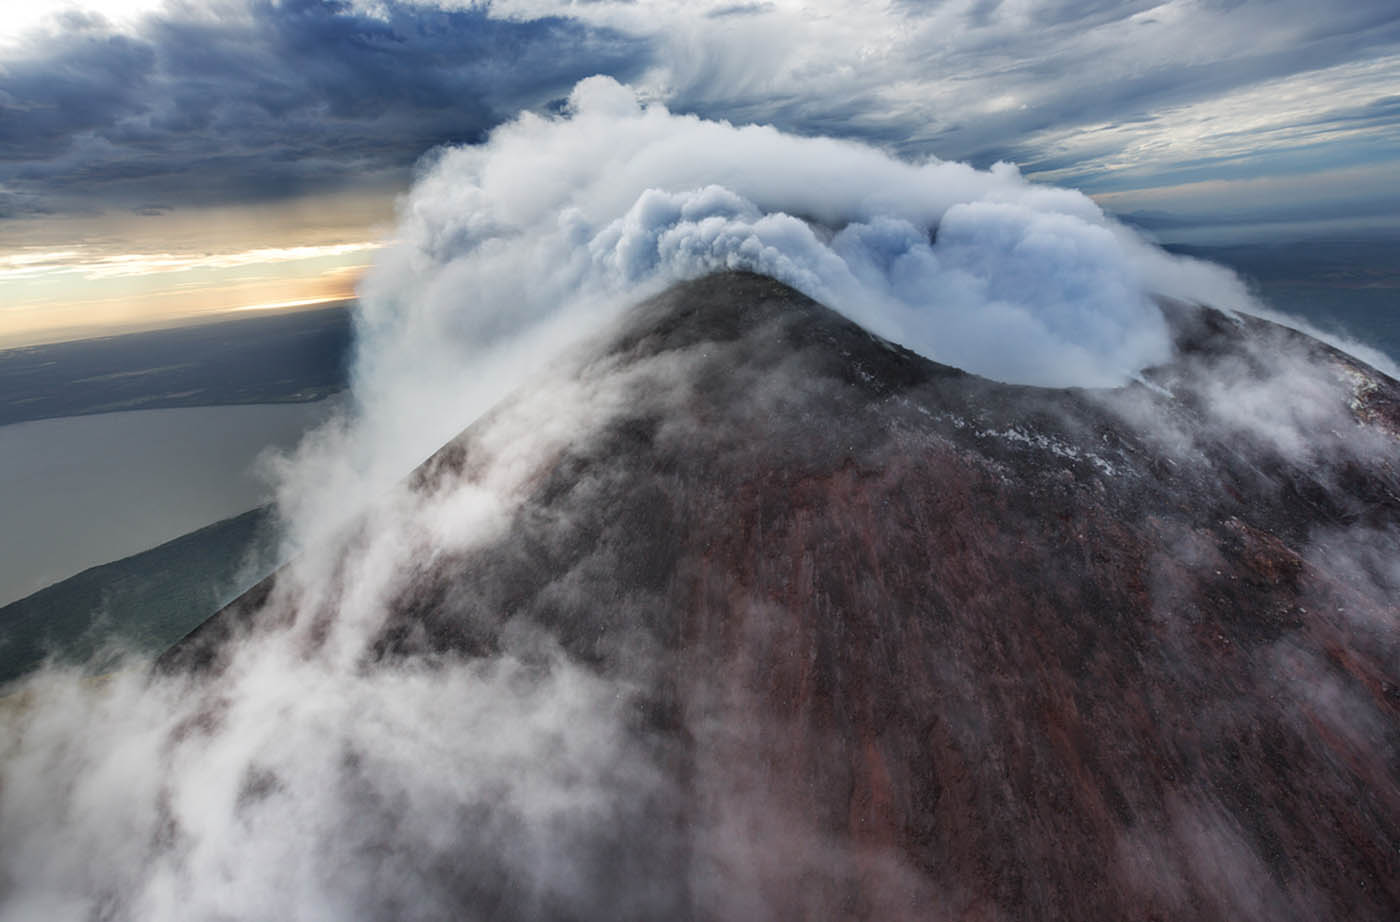 About the San Cristobal Volcano